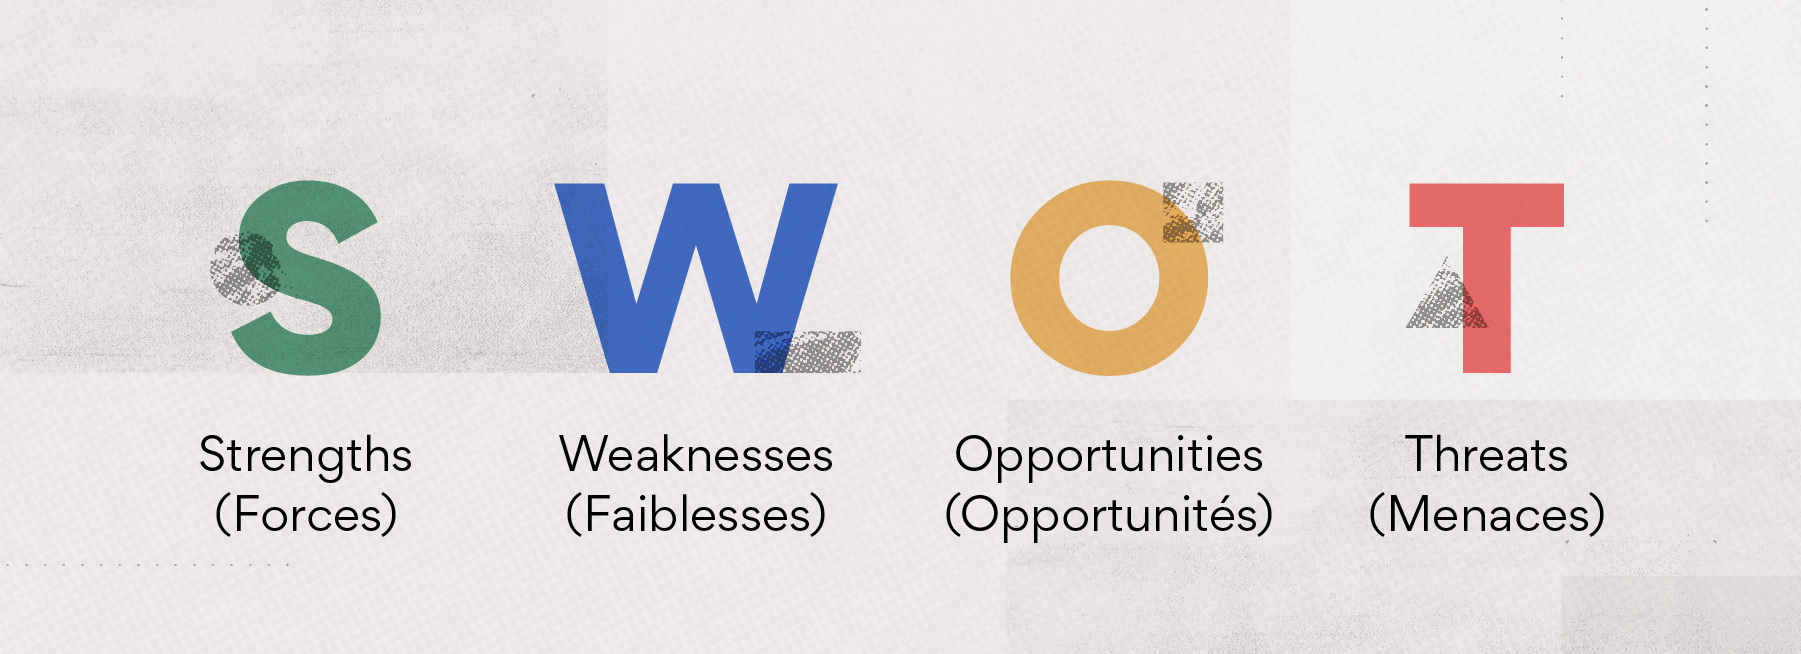 Strengths (forces), weaknesses (faiblesses), opportunities (opportunités), threats (menaces)